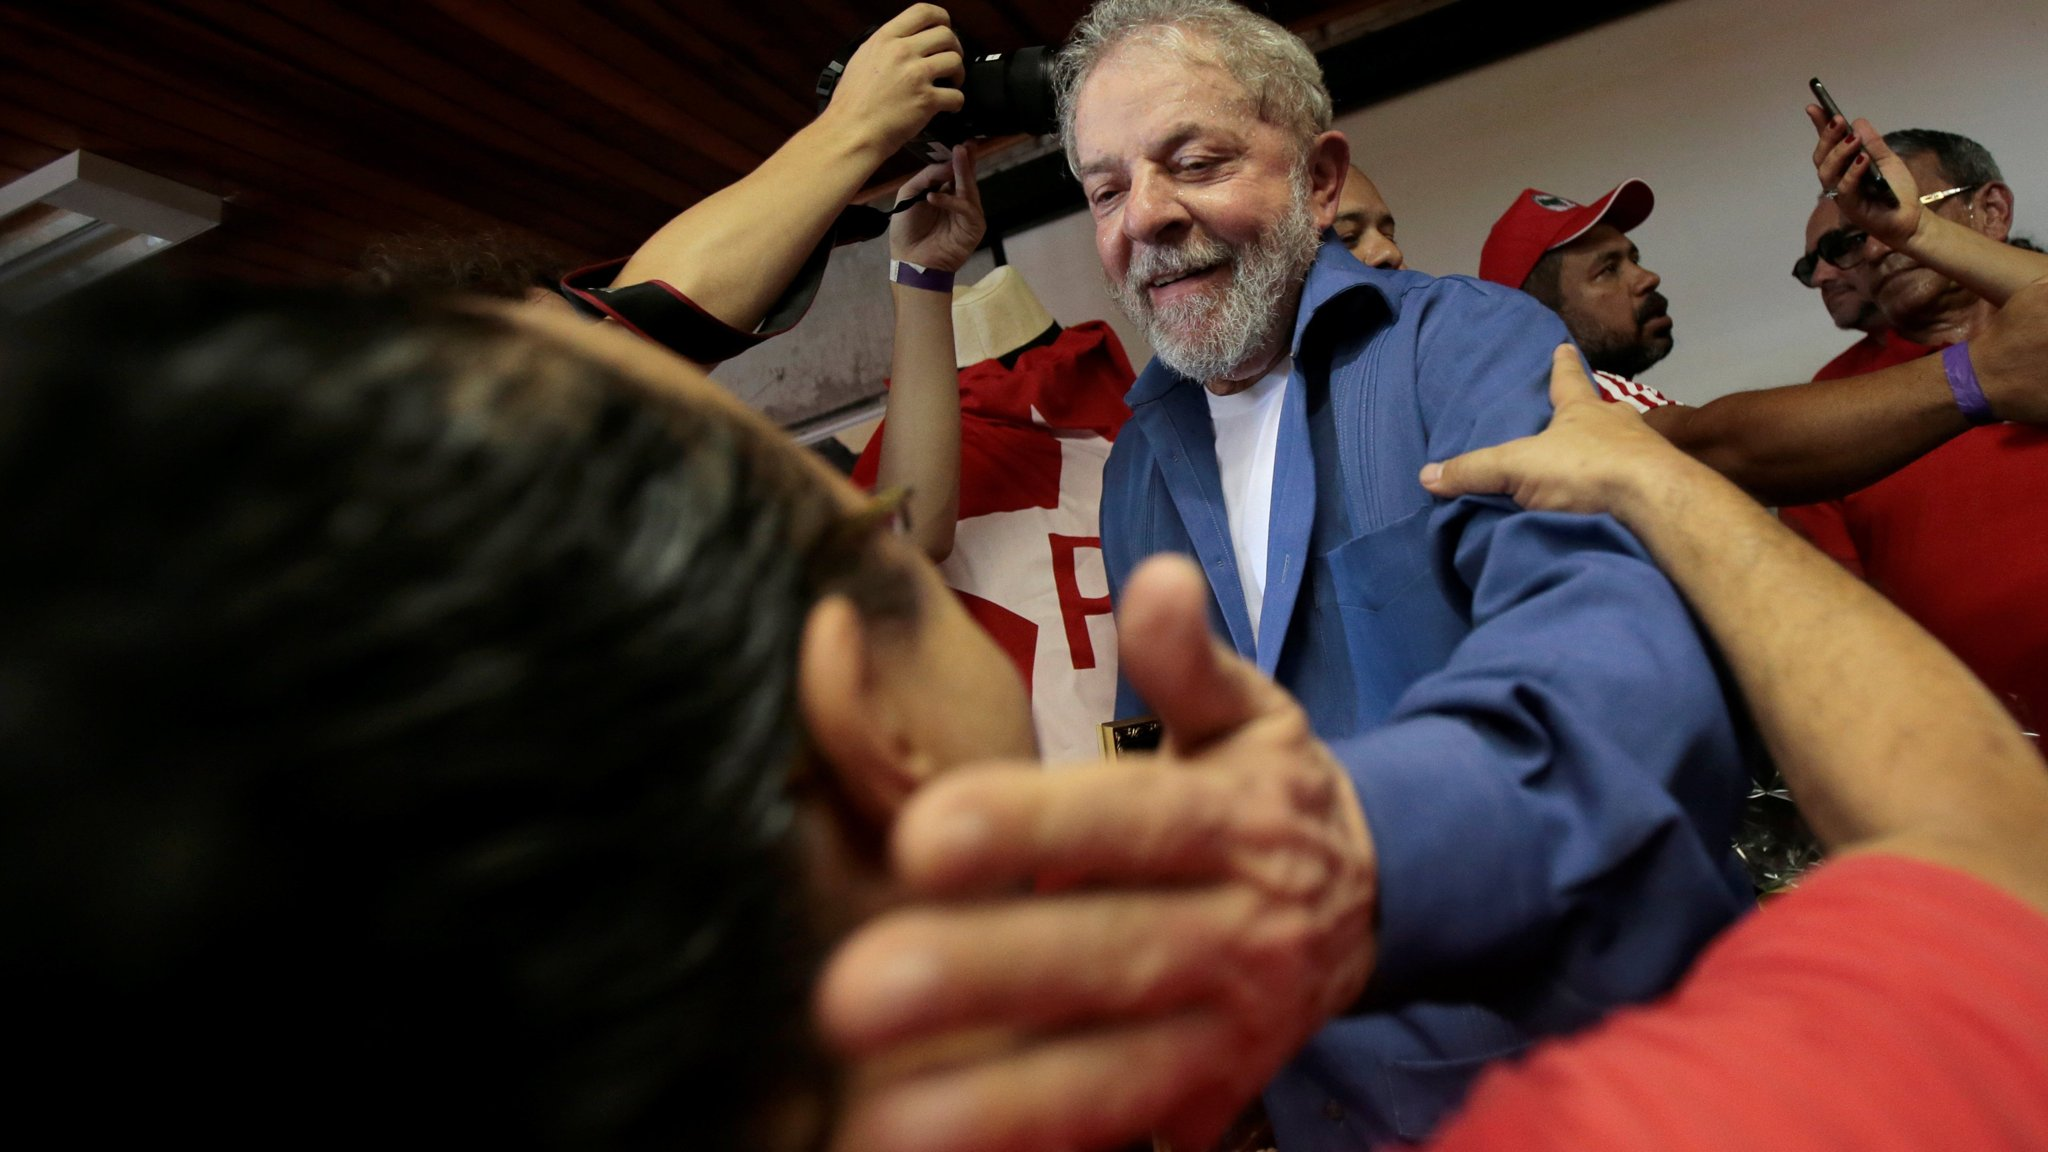 Brazil's Lula plots comeback despite corruption conviction